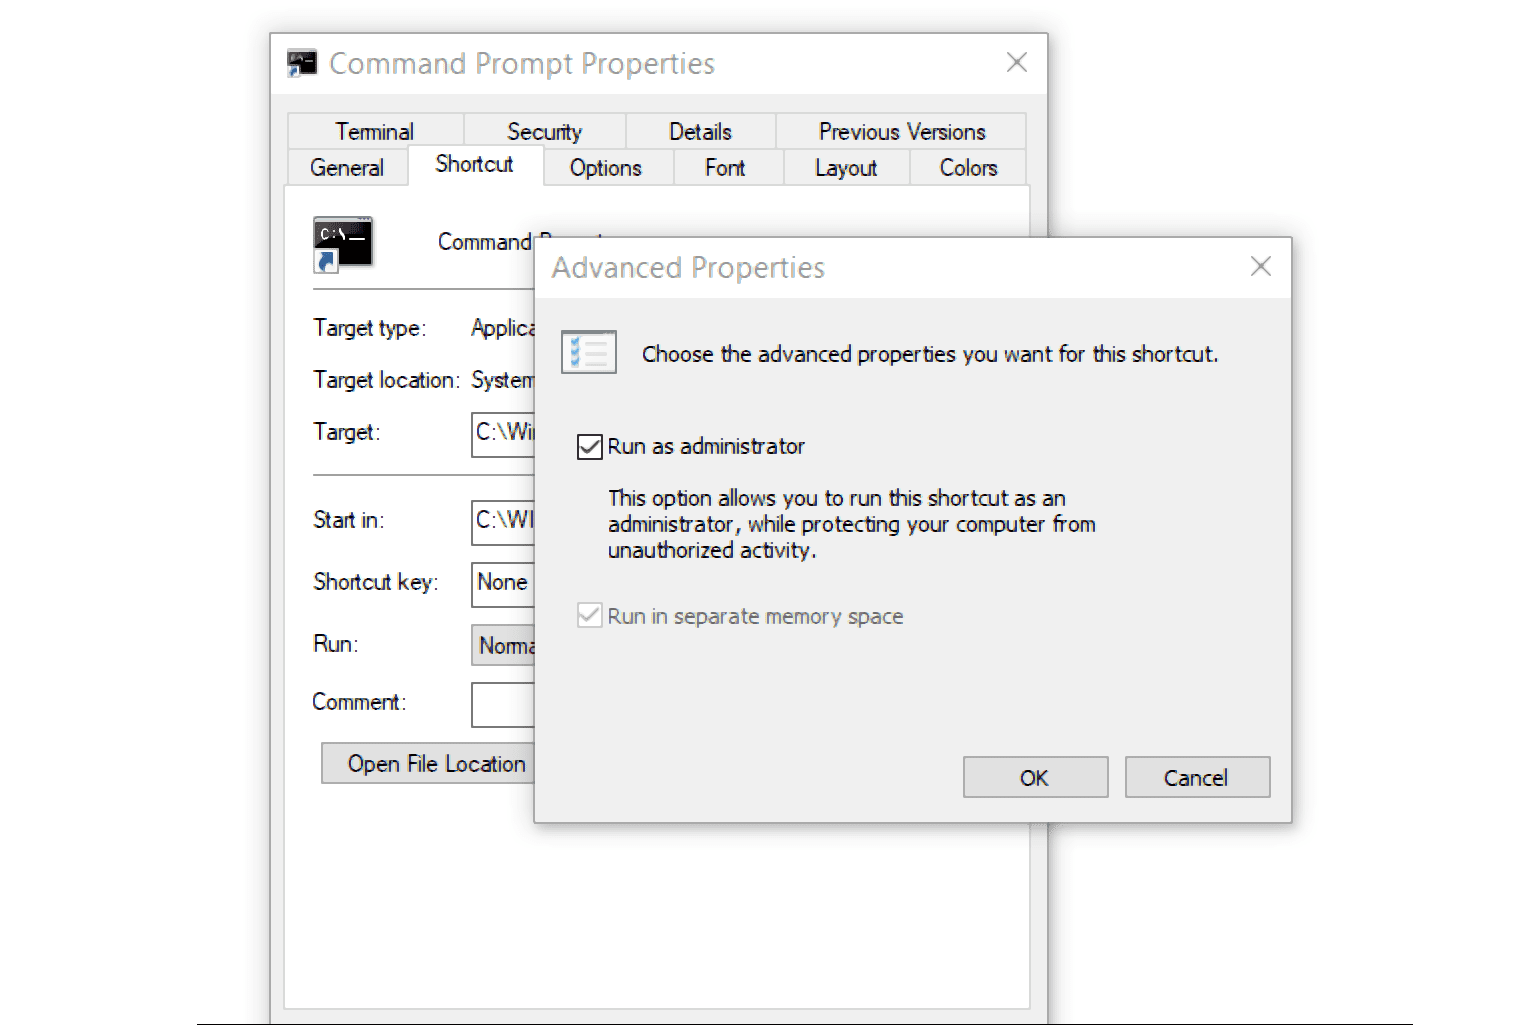 Command Prompt run as administrator option